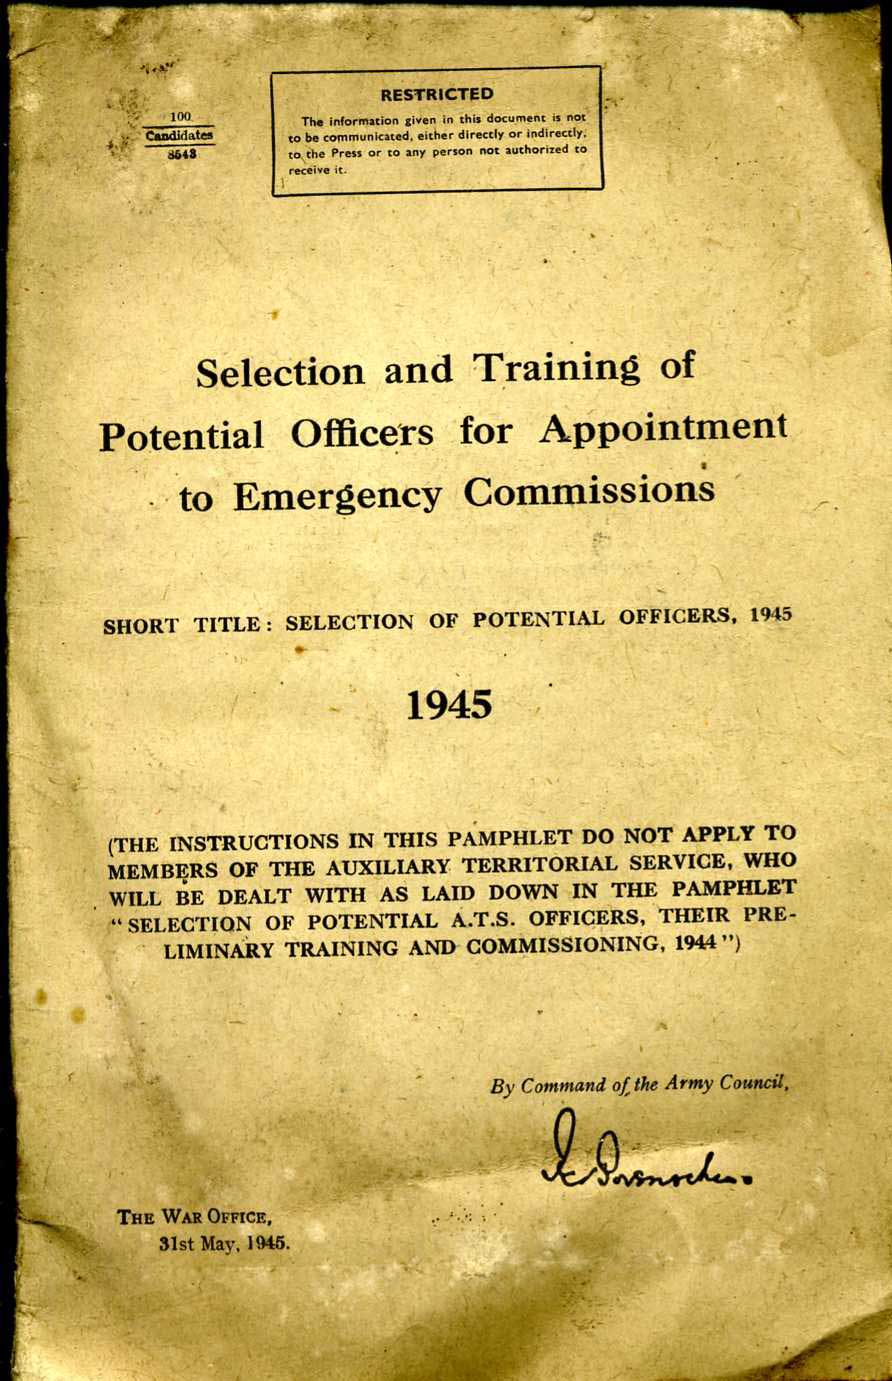 Selection and Training of Potential Officers for Appointment to Emergency Commissions 1945